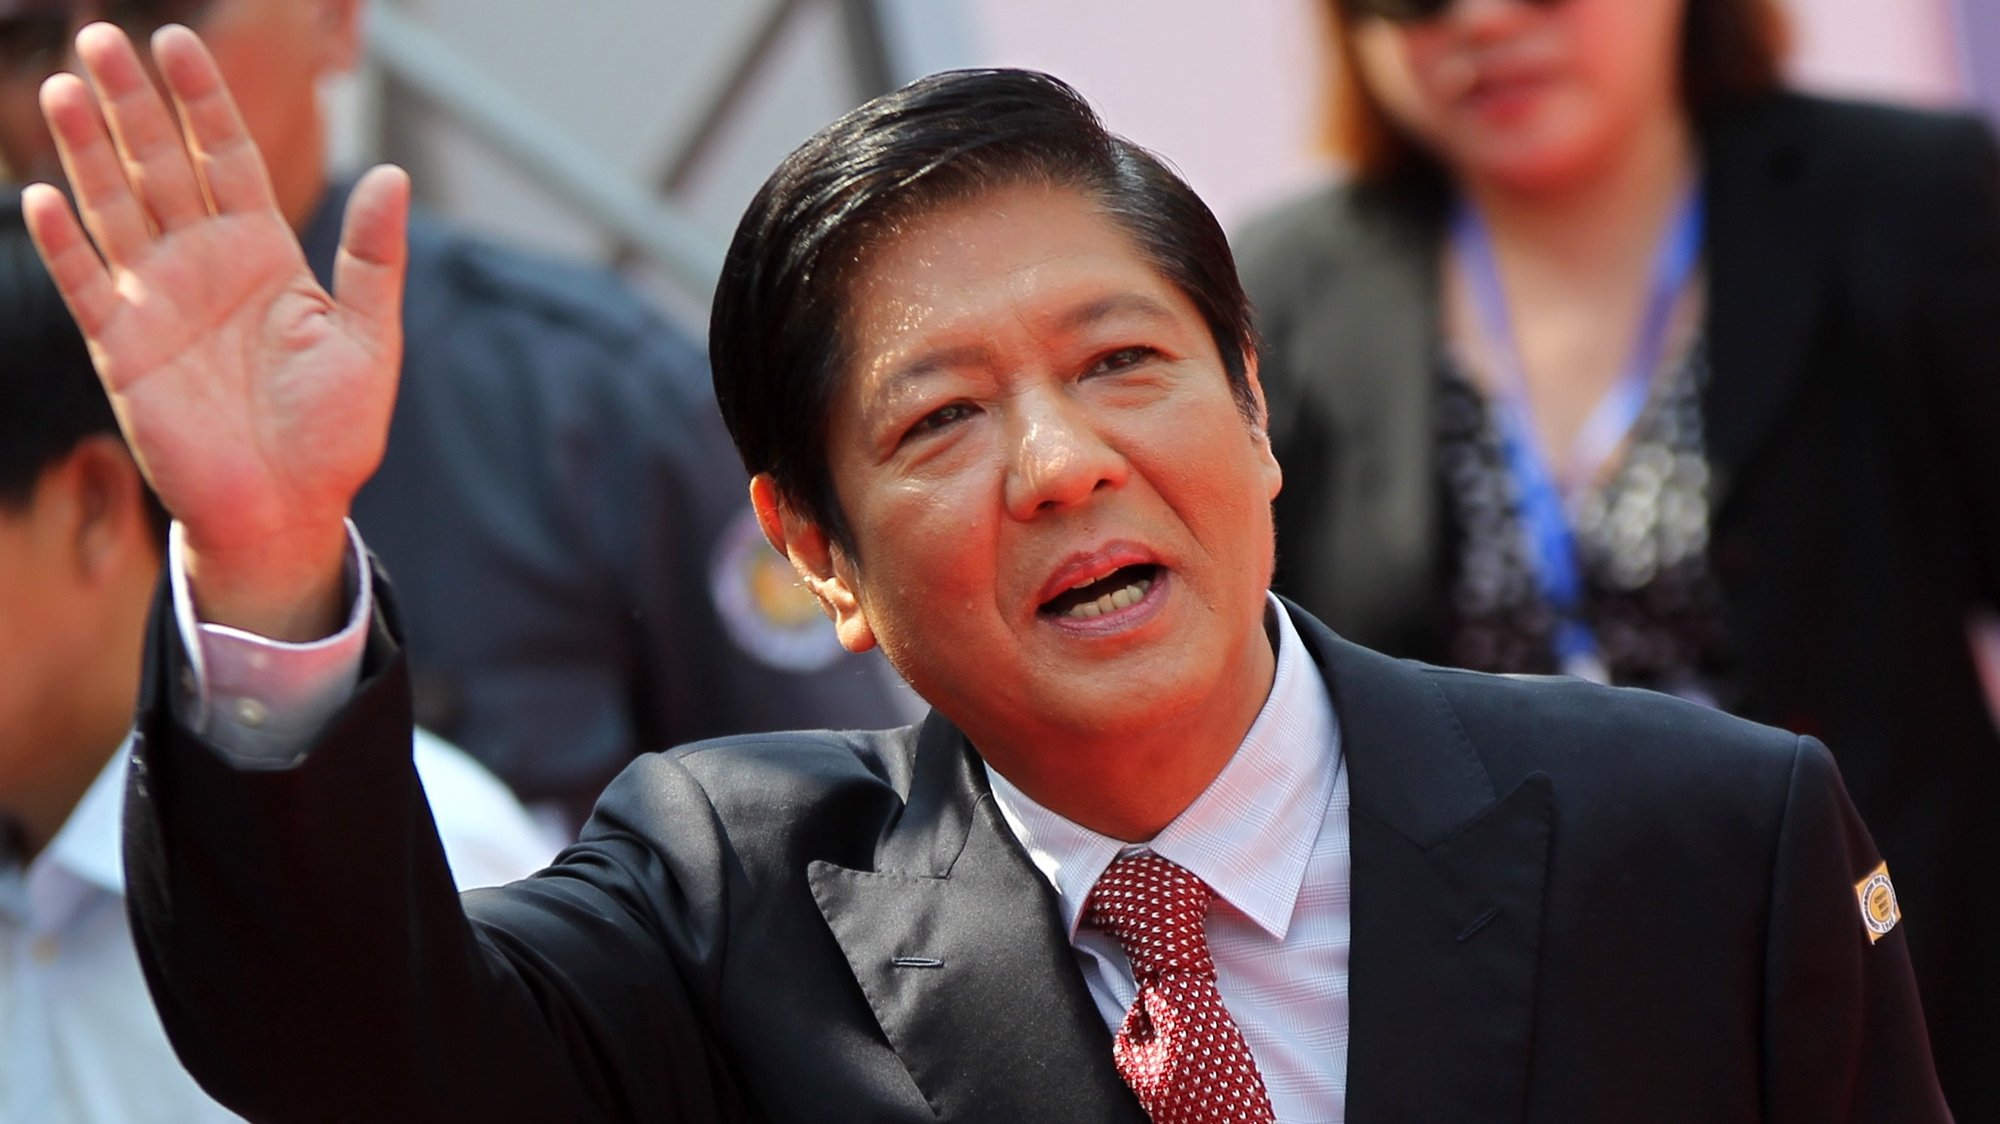 epa07590715 Ferdinand 'Bongbong' Marcos Junior (C), son of late dictator Ferdinand Marcos, arrives to attend the proclamation ceremony of his sister, Senator-elect Imee Marcos (not pictured) in Manila, Philippines, 22 May 2019. According to reports, the Commission on Elections (Comelec), sitting as the National Board of Canvassers (NBOC), officially proclaimed all 12 senators-elect, nine days after the 13 May Philippine midterm polls.  EPA/RODEL LUMIARES